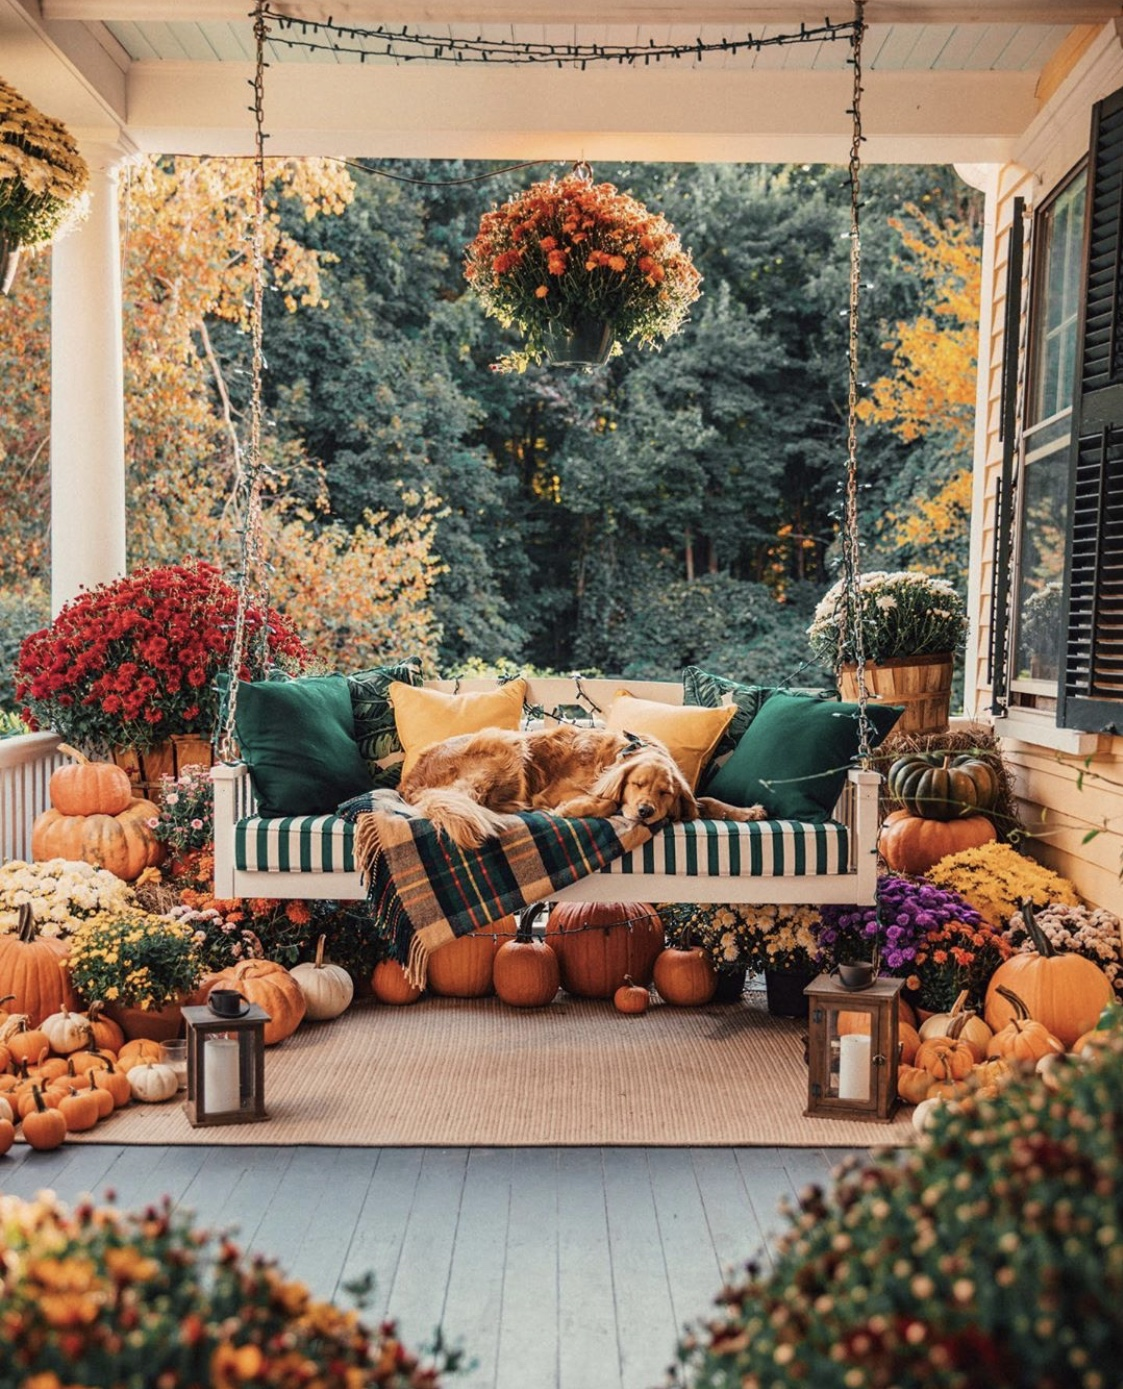 3 Tips For Getting Your Home Fall Ready